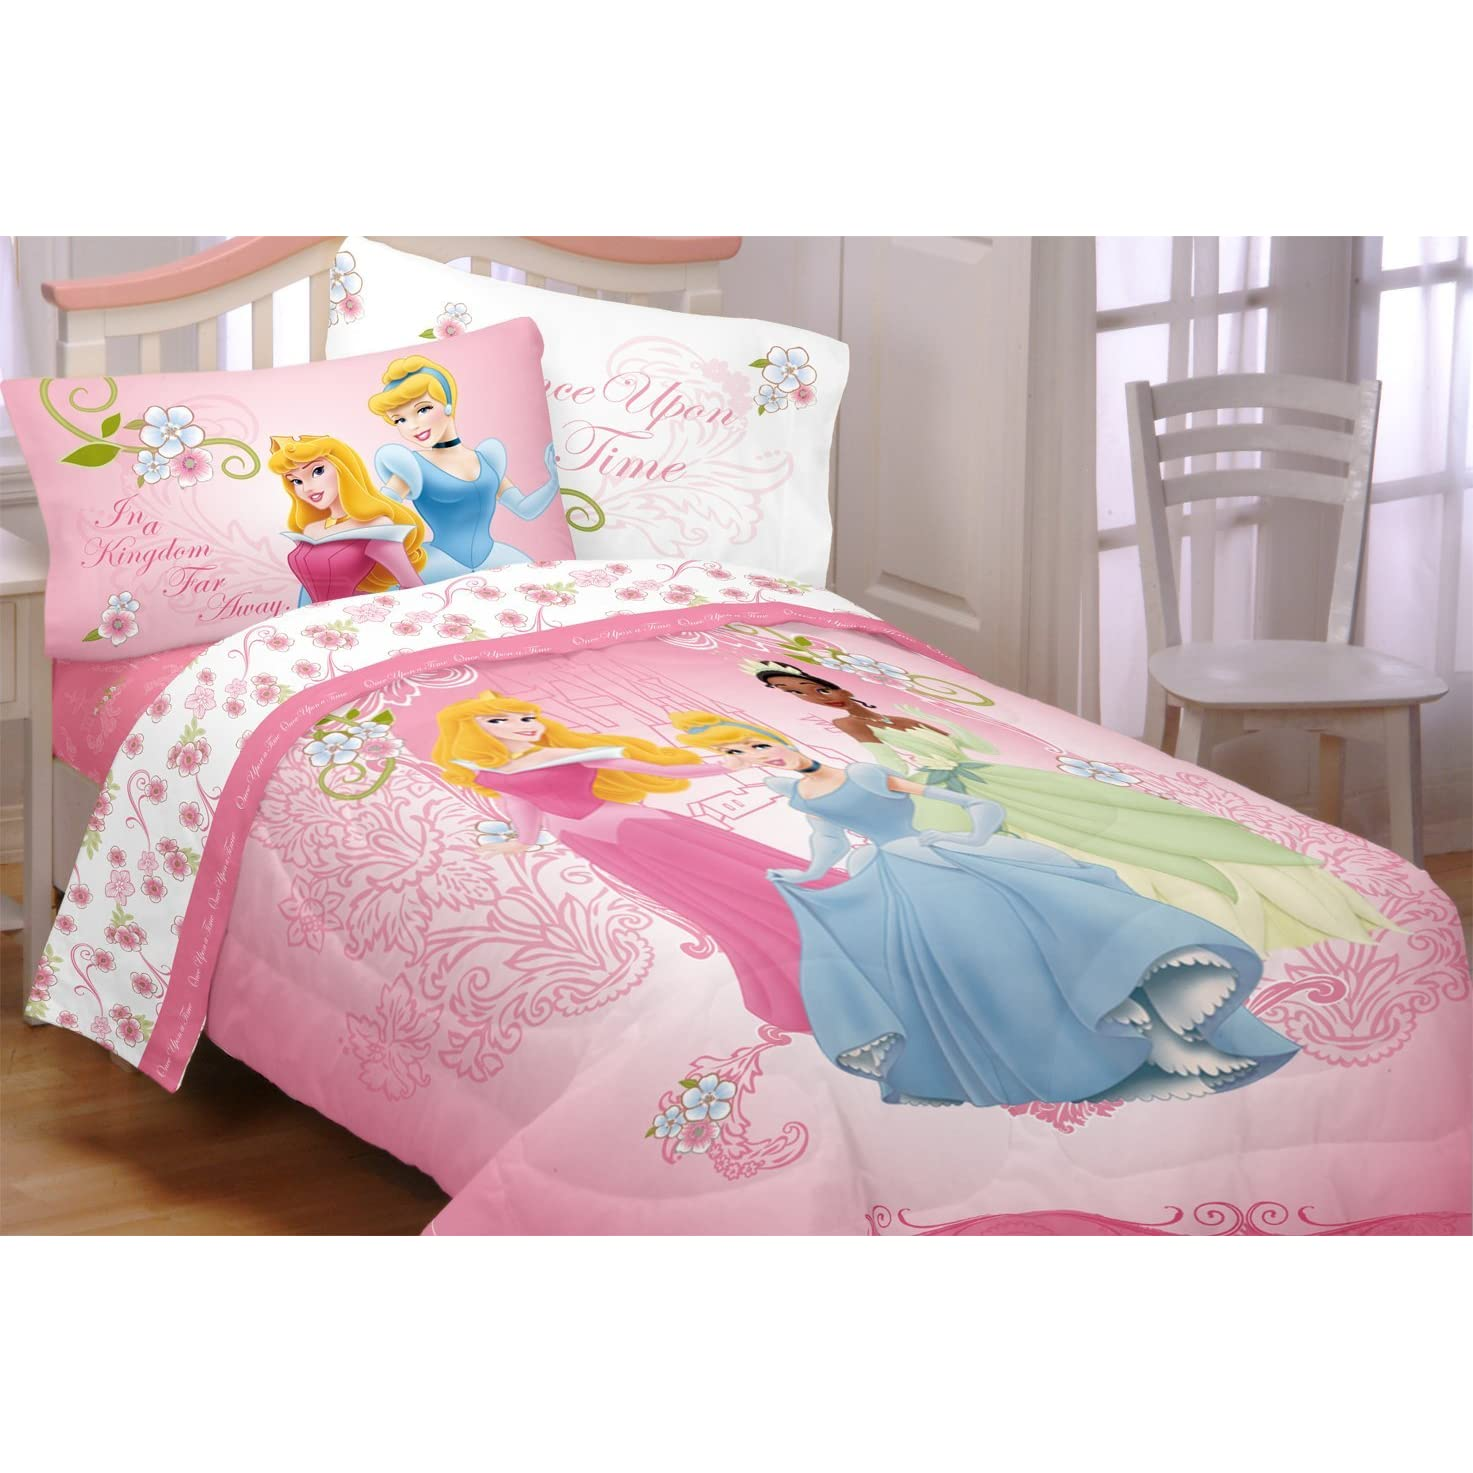 Disney Princesses Your Royal Grace Twin/Full Comforter